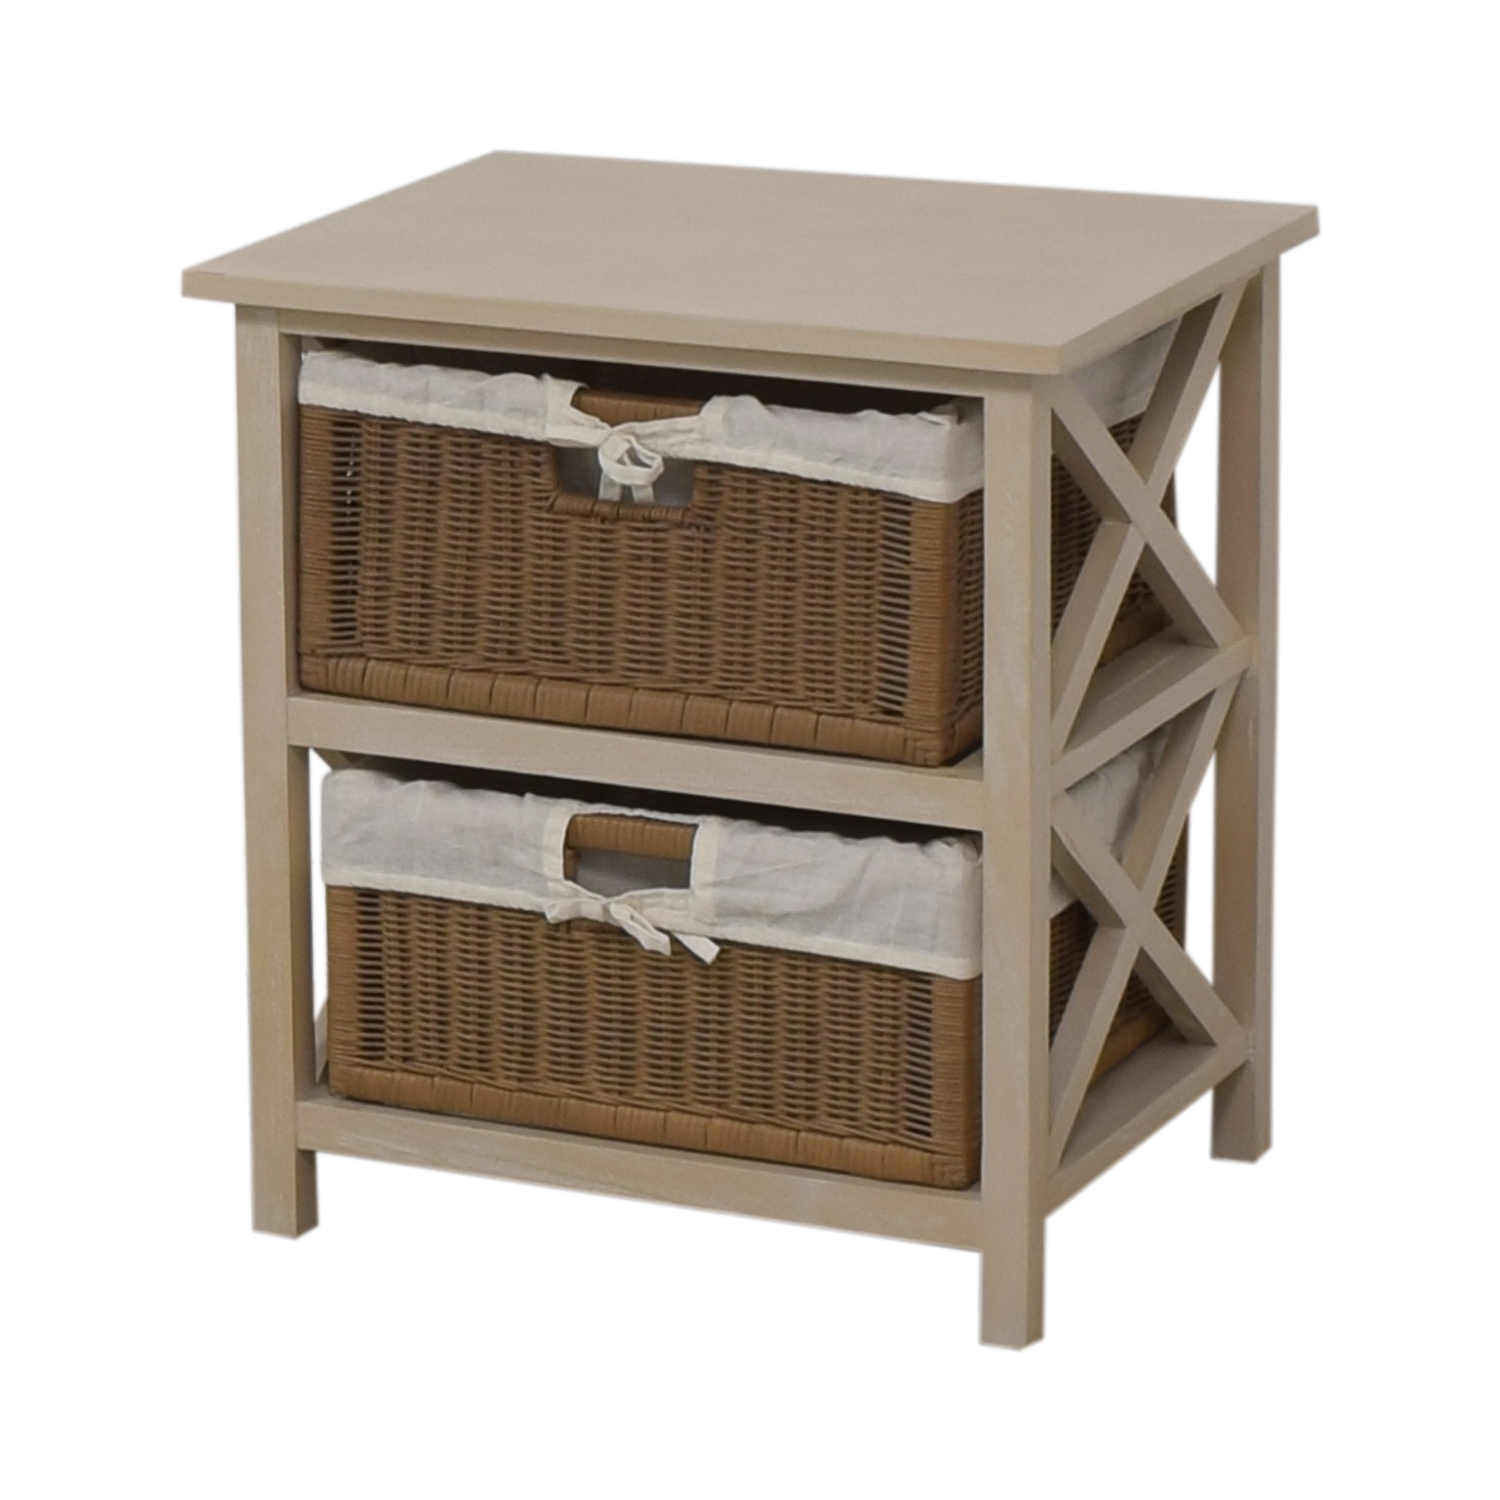 84 Off End Table With Two Wicker Baskets Storage